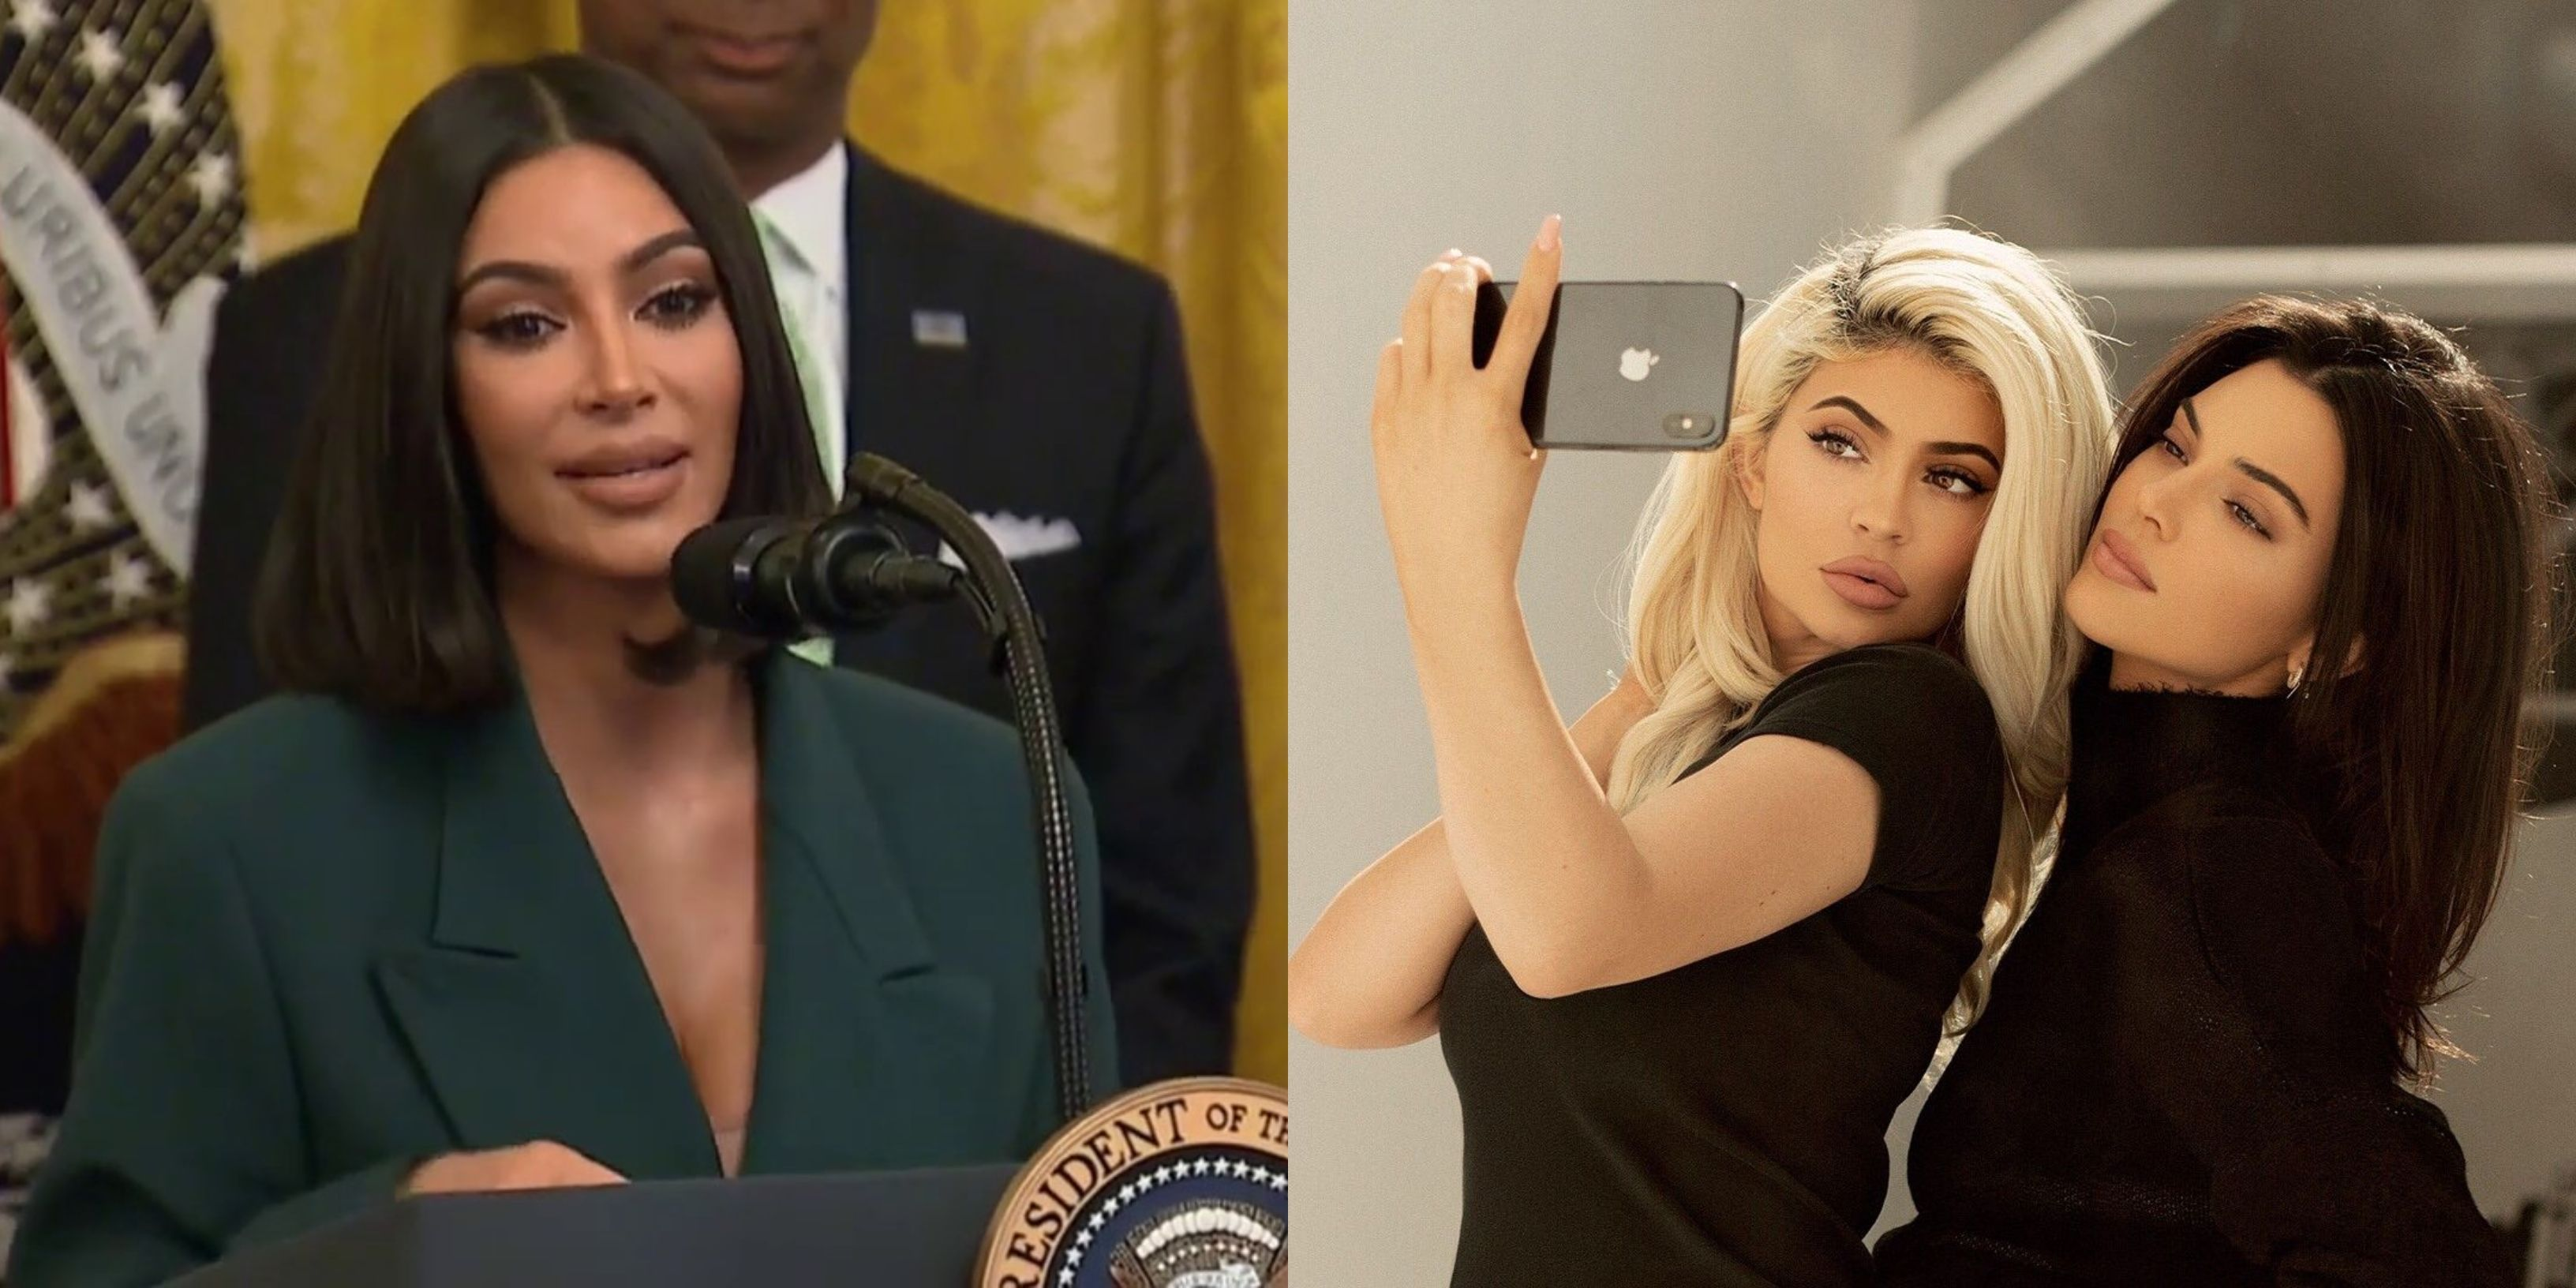 5 Positive Things The Kardashian/Jenners Have Done For The World (& 5 Not So Great)